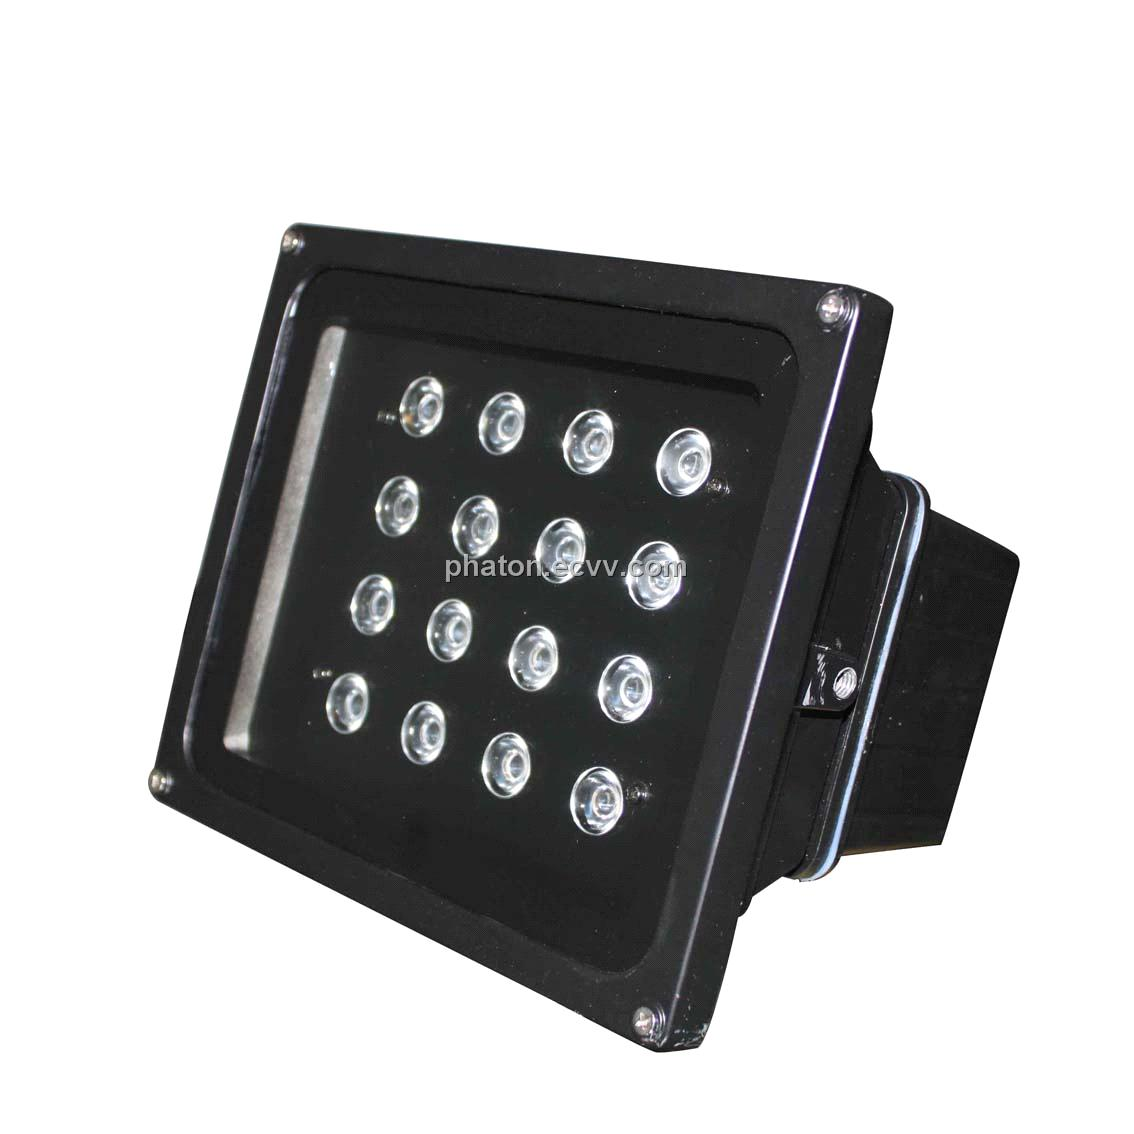 Dmx rgb led outdoor flood light purchasing souring agent ecvv dmx rgb led outdoor flood light aloadofball